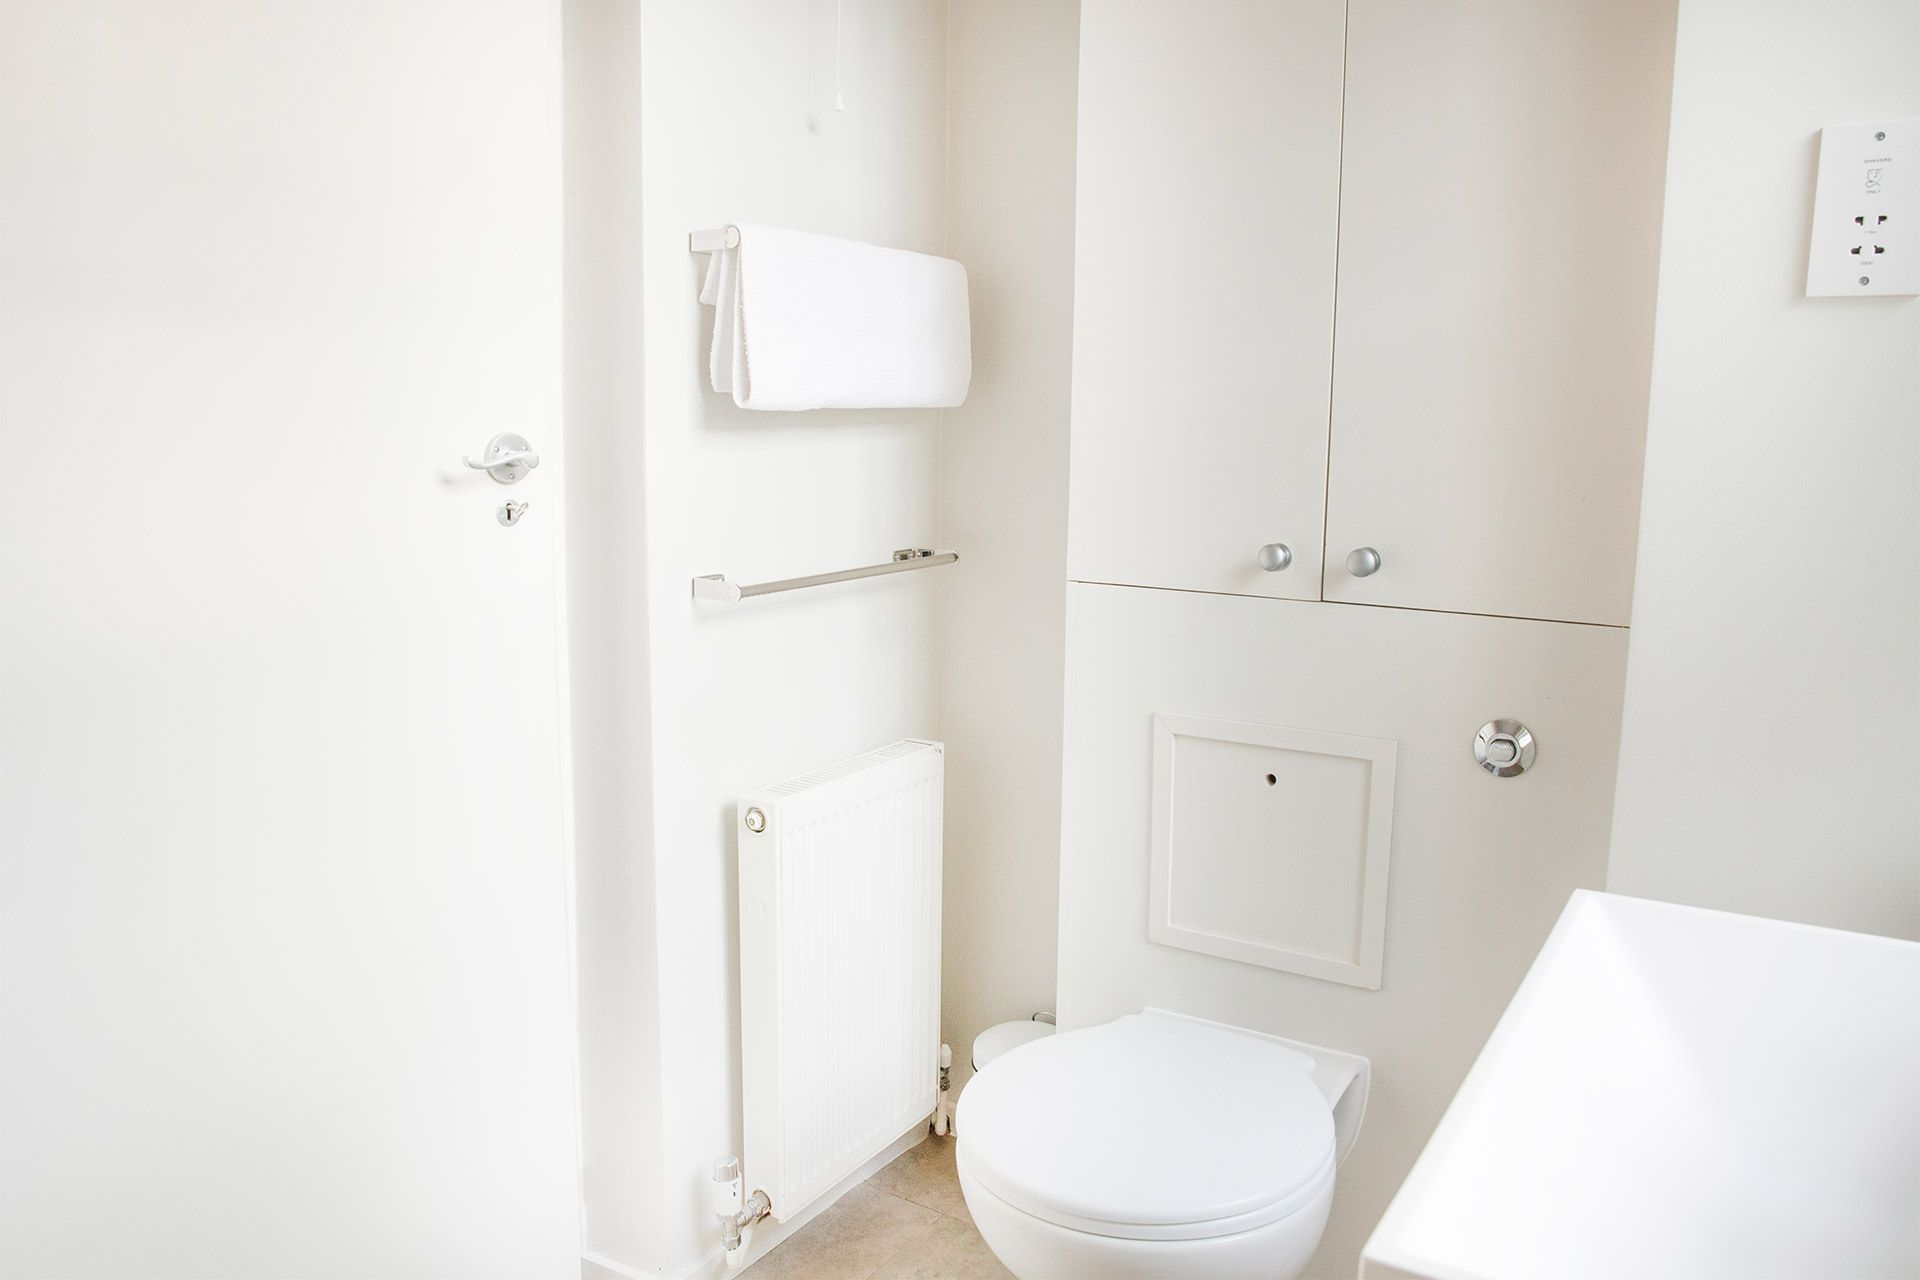 Toilet, towel rack and radiator in the Gordon vacation rental offered by London Perfect